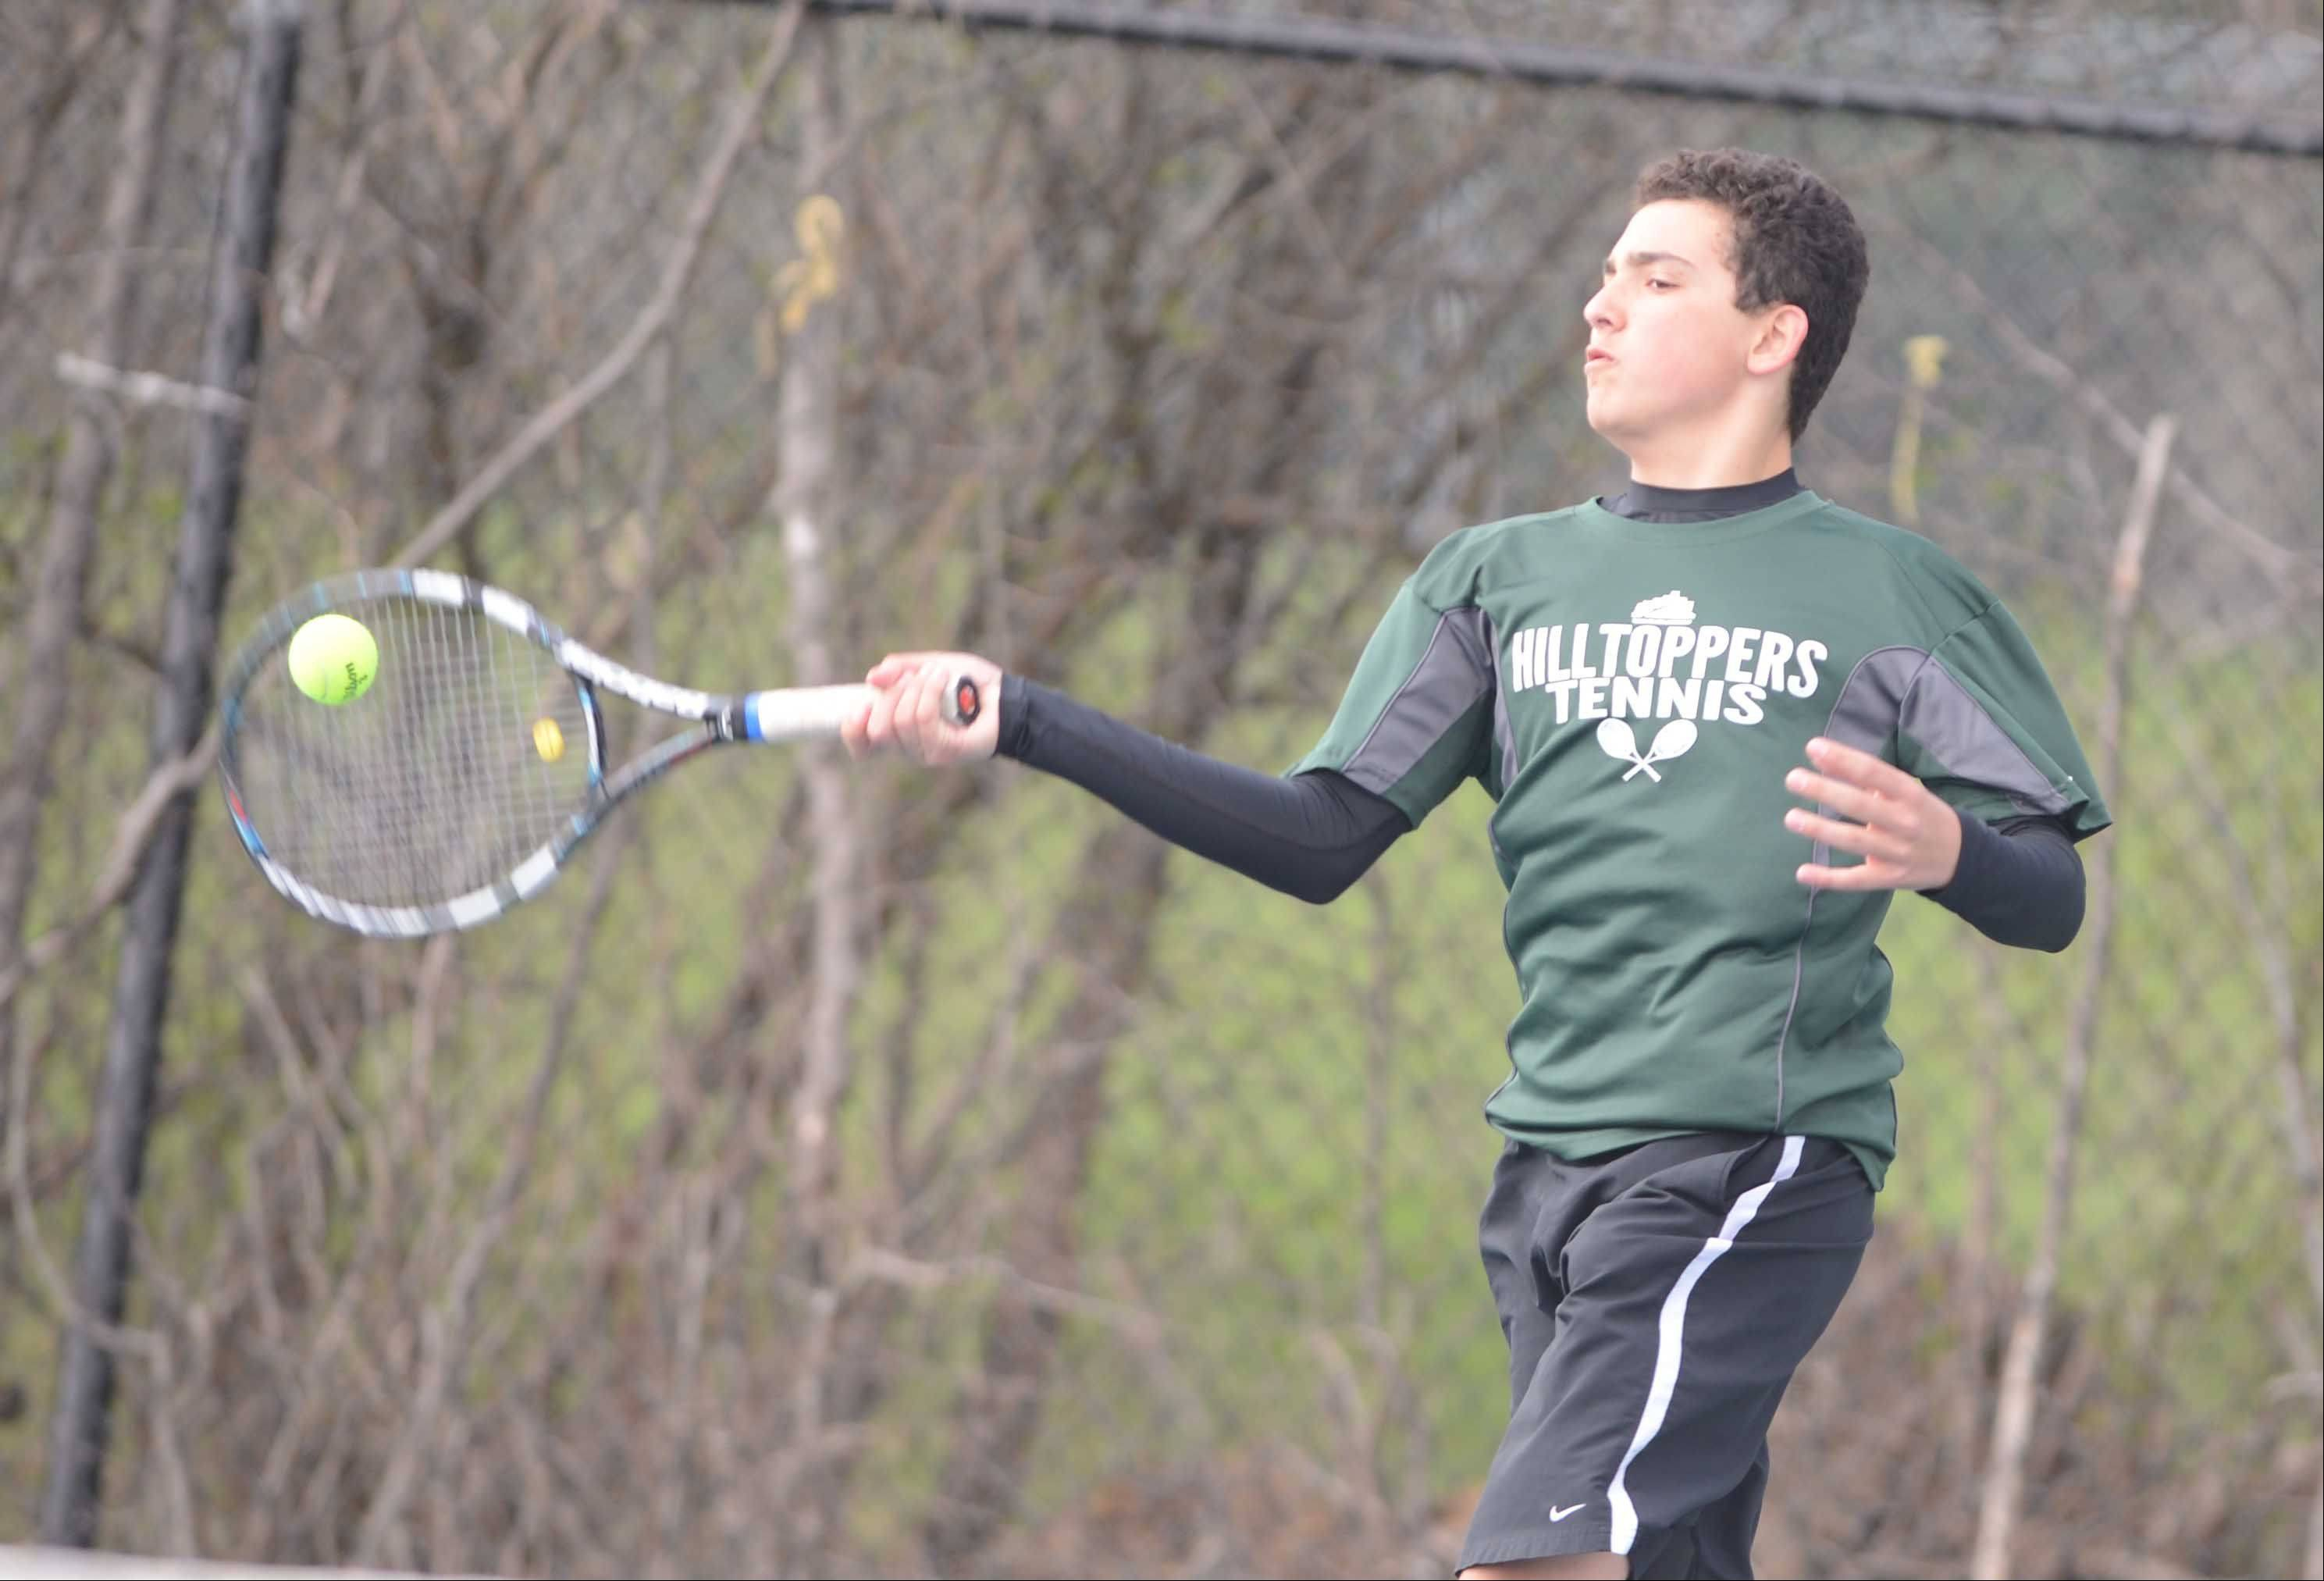 Paul Michna/pmichna@dailyherald.comSteven Hanna of Glenbard West in the #2 singles match during the Glenbard West at Wheaton North boys tennis meet Wednesday.